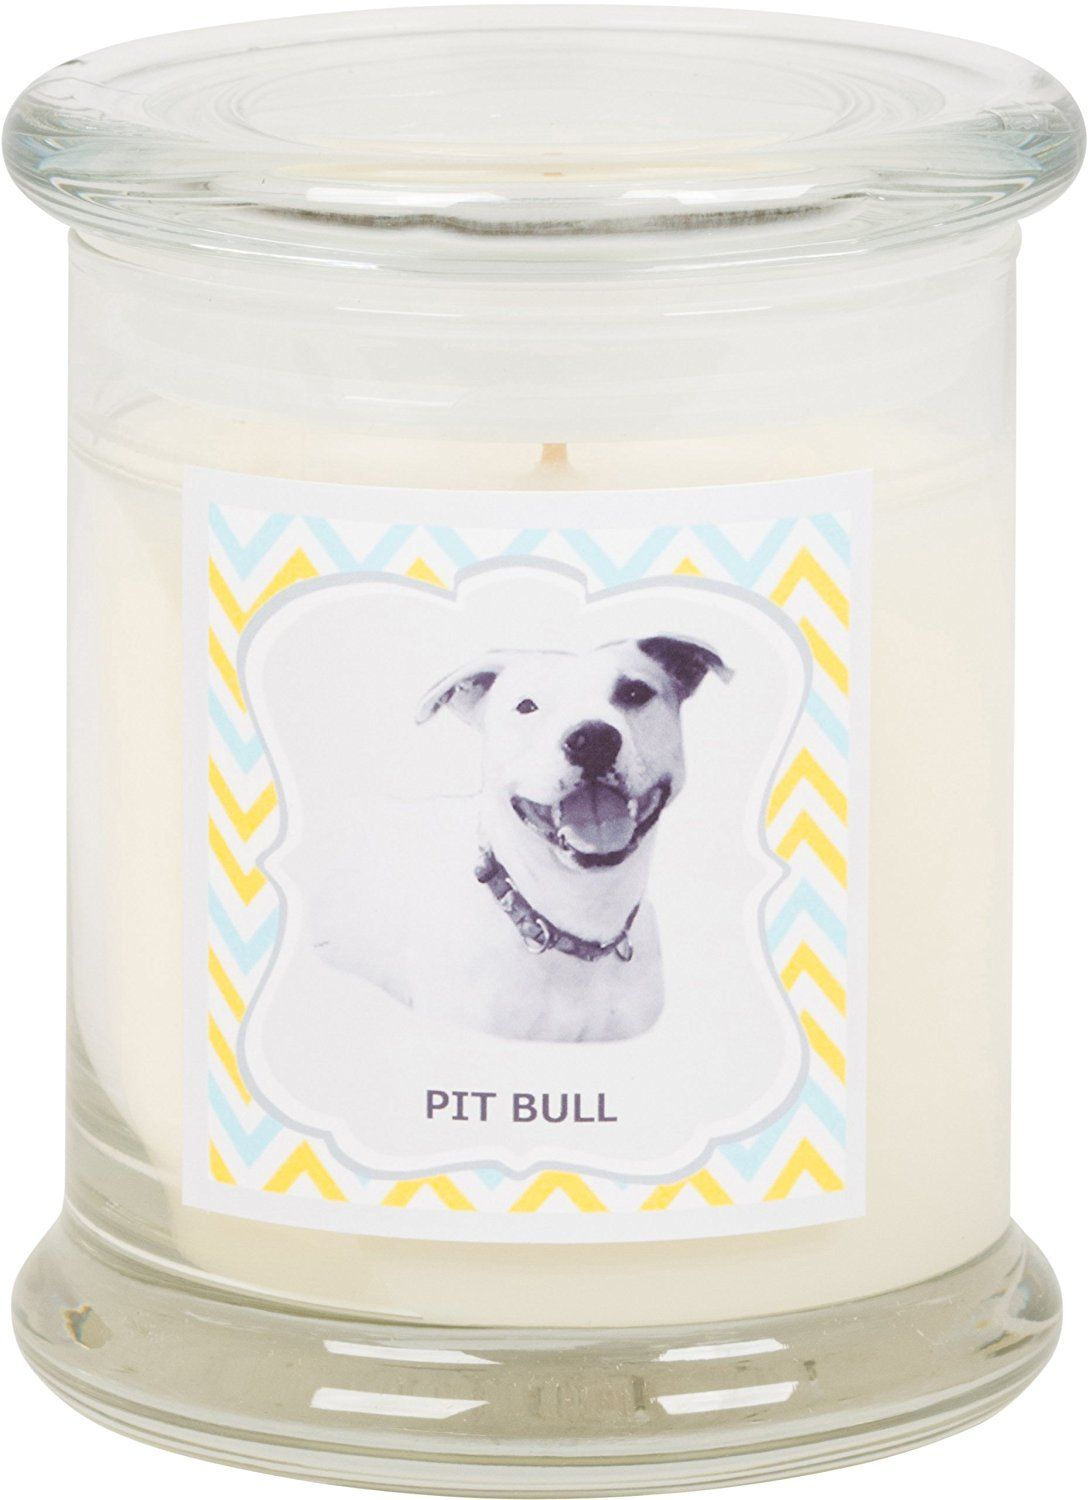 Aroma paws breed candle jar 12ounce pitbull click